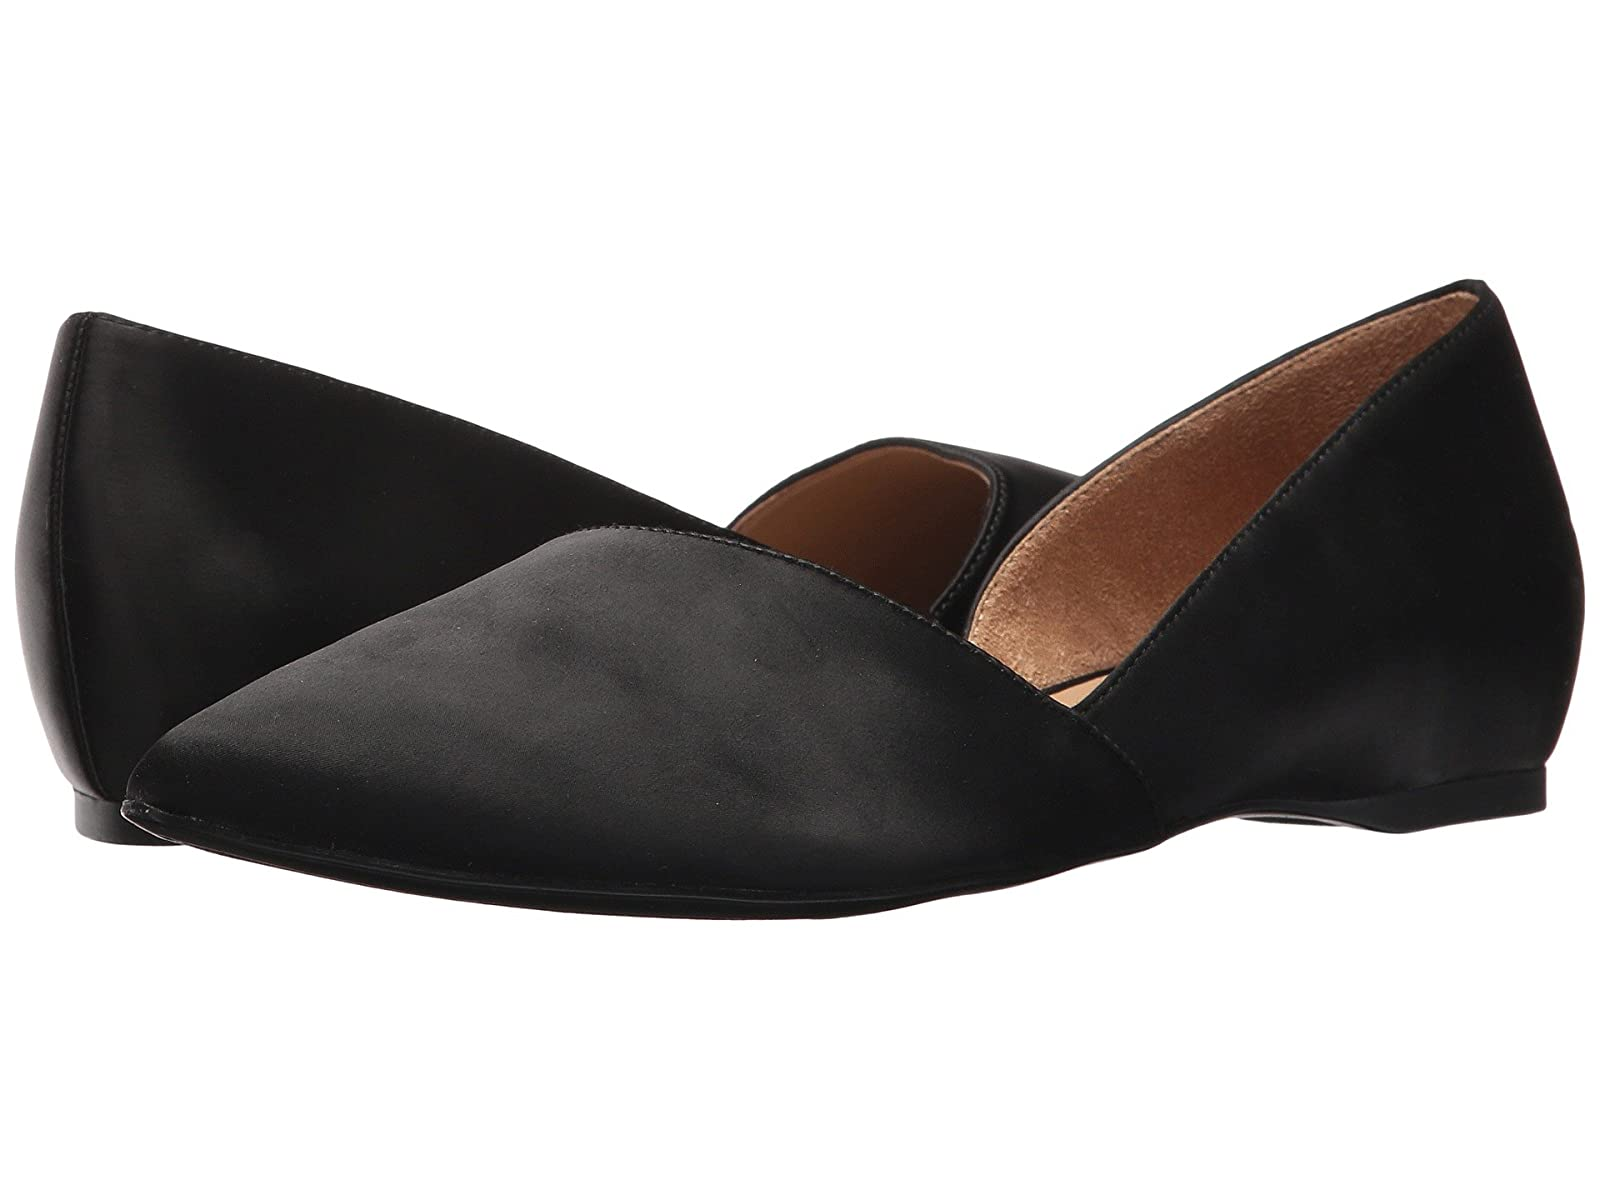 Naturalizer SamanthaCheap and distinctive eye-catching shoes